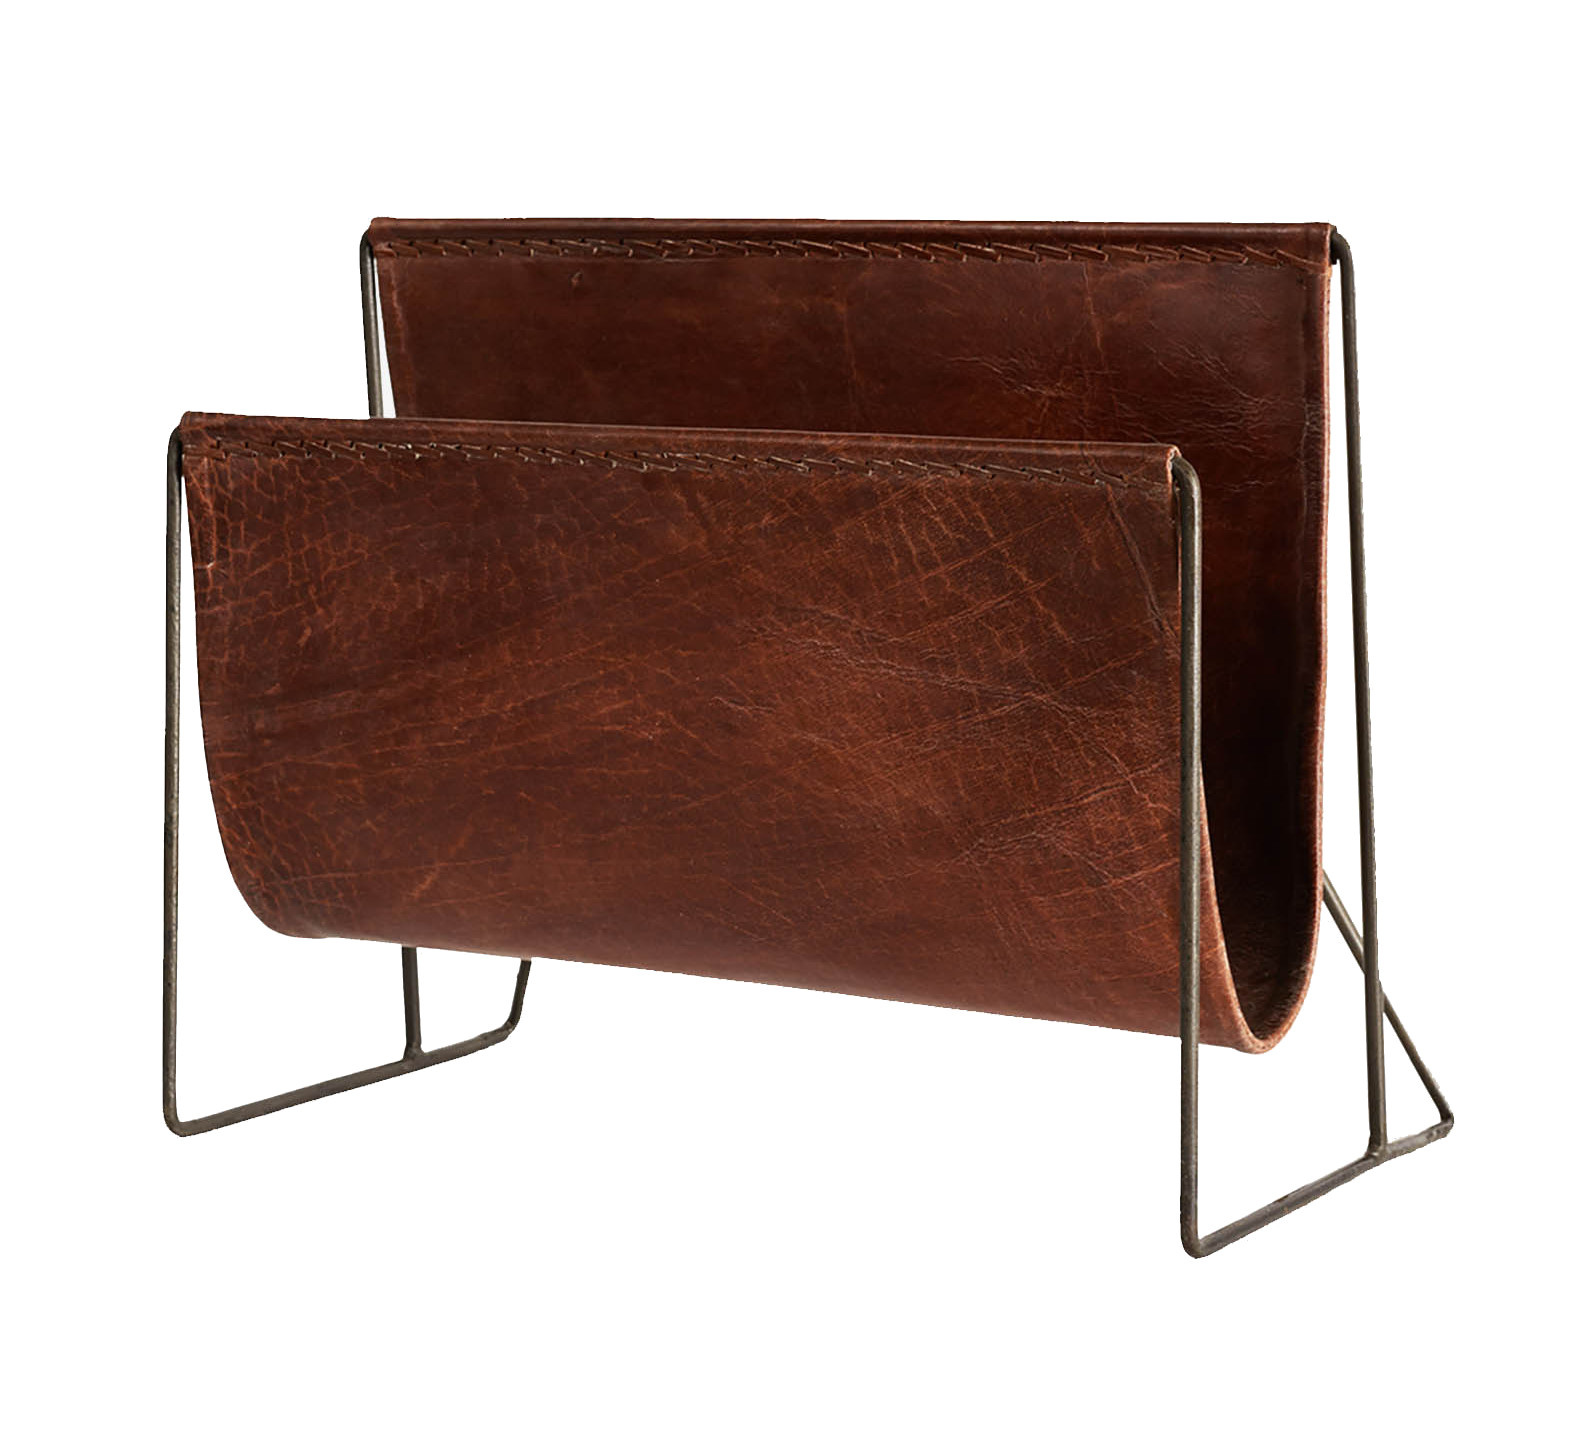 New Routz magazine rack  with leather